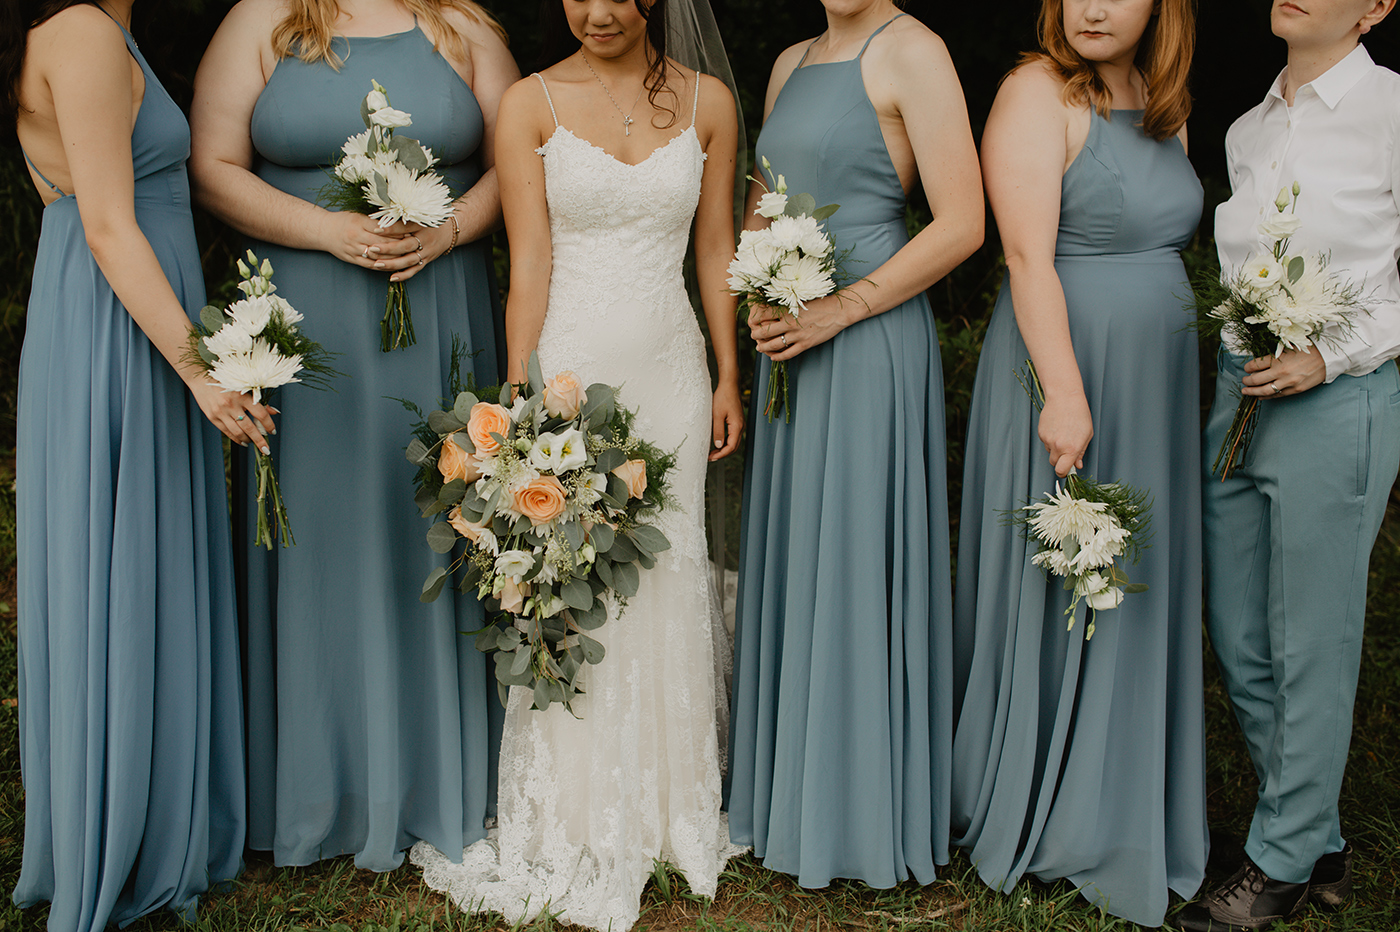 wedding-party-bridesmaids